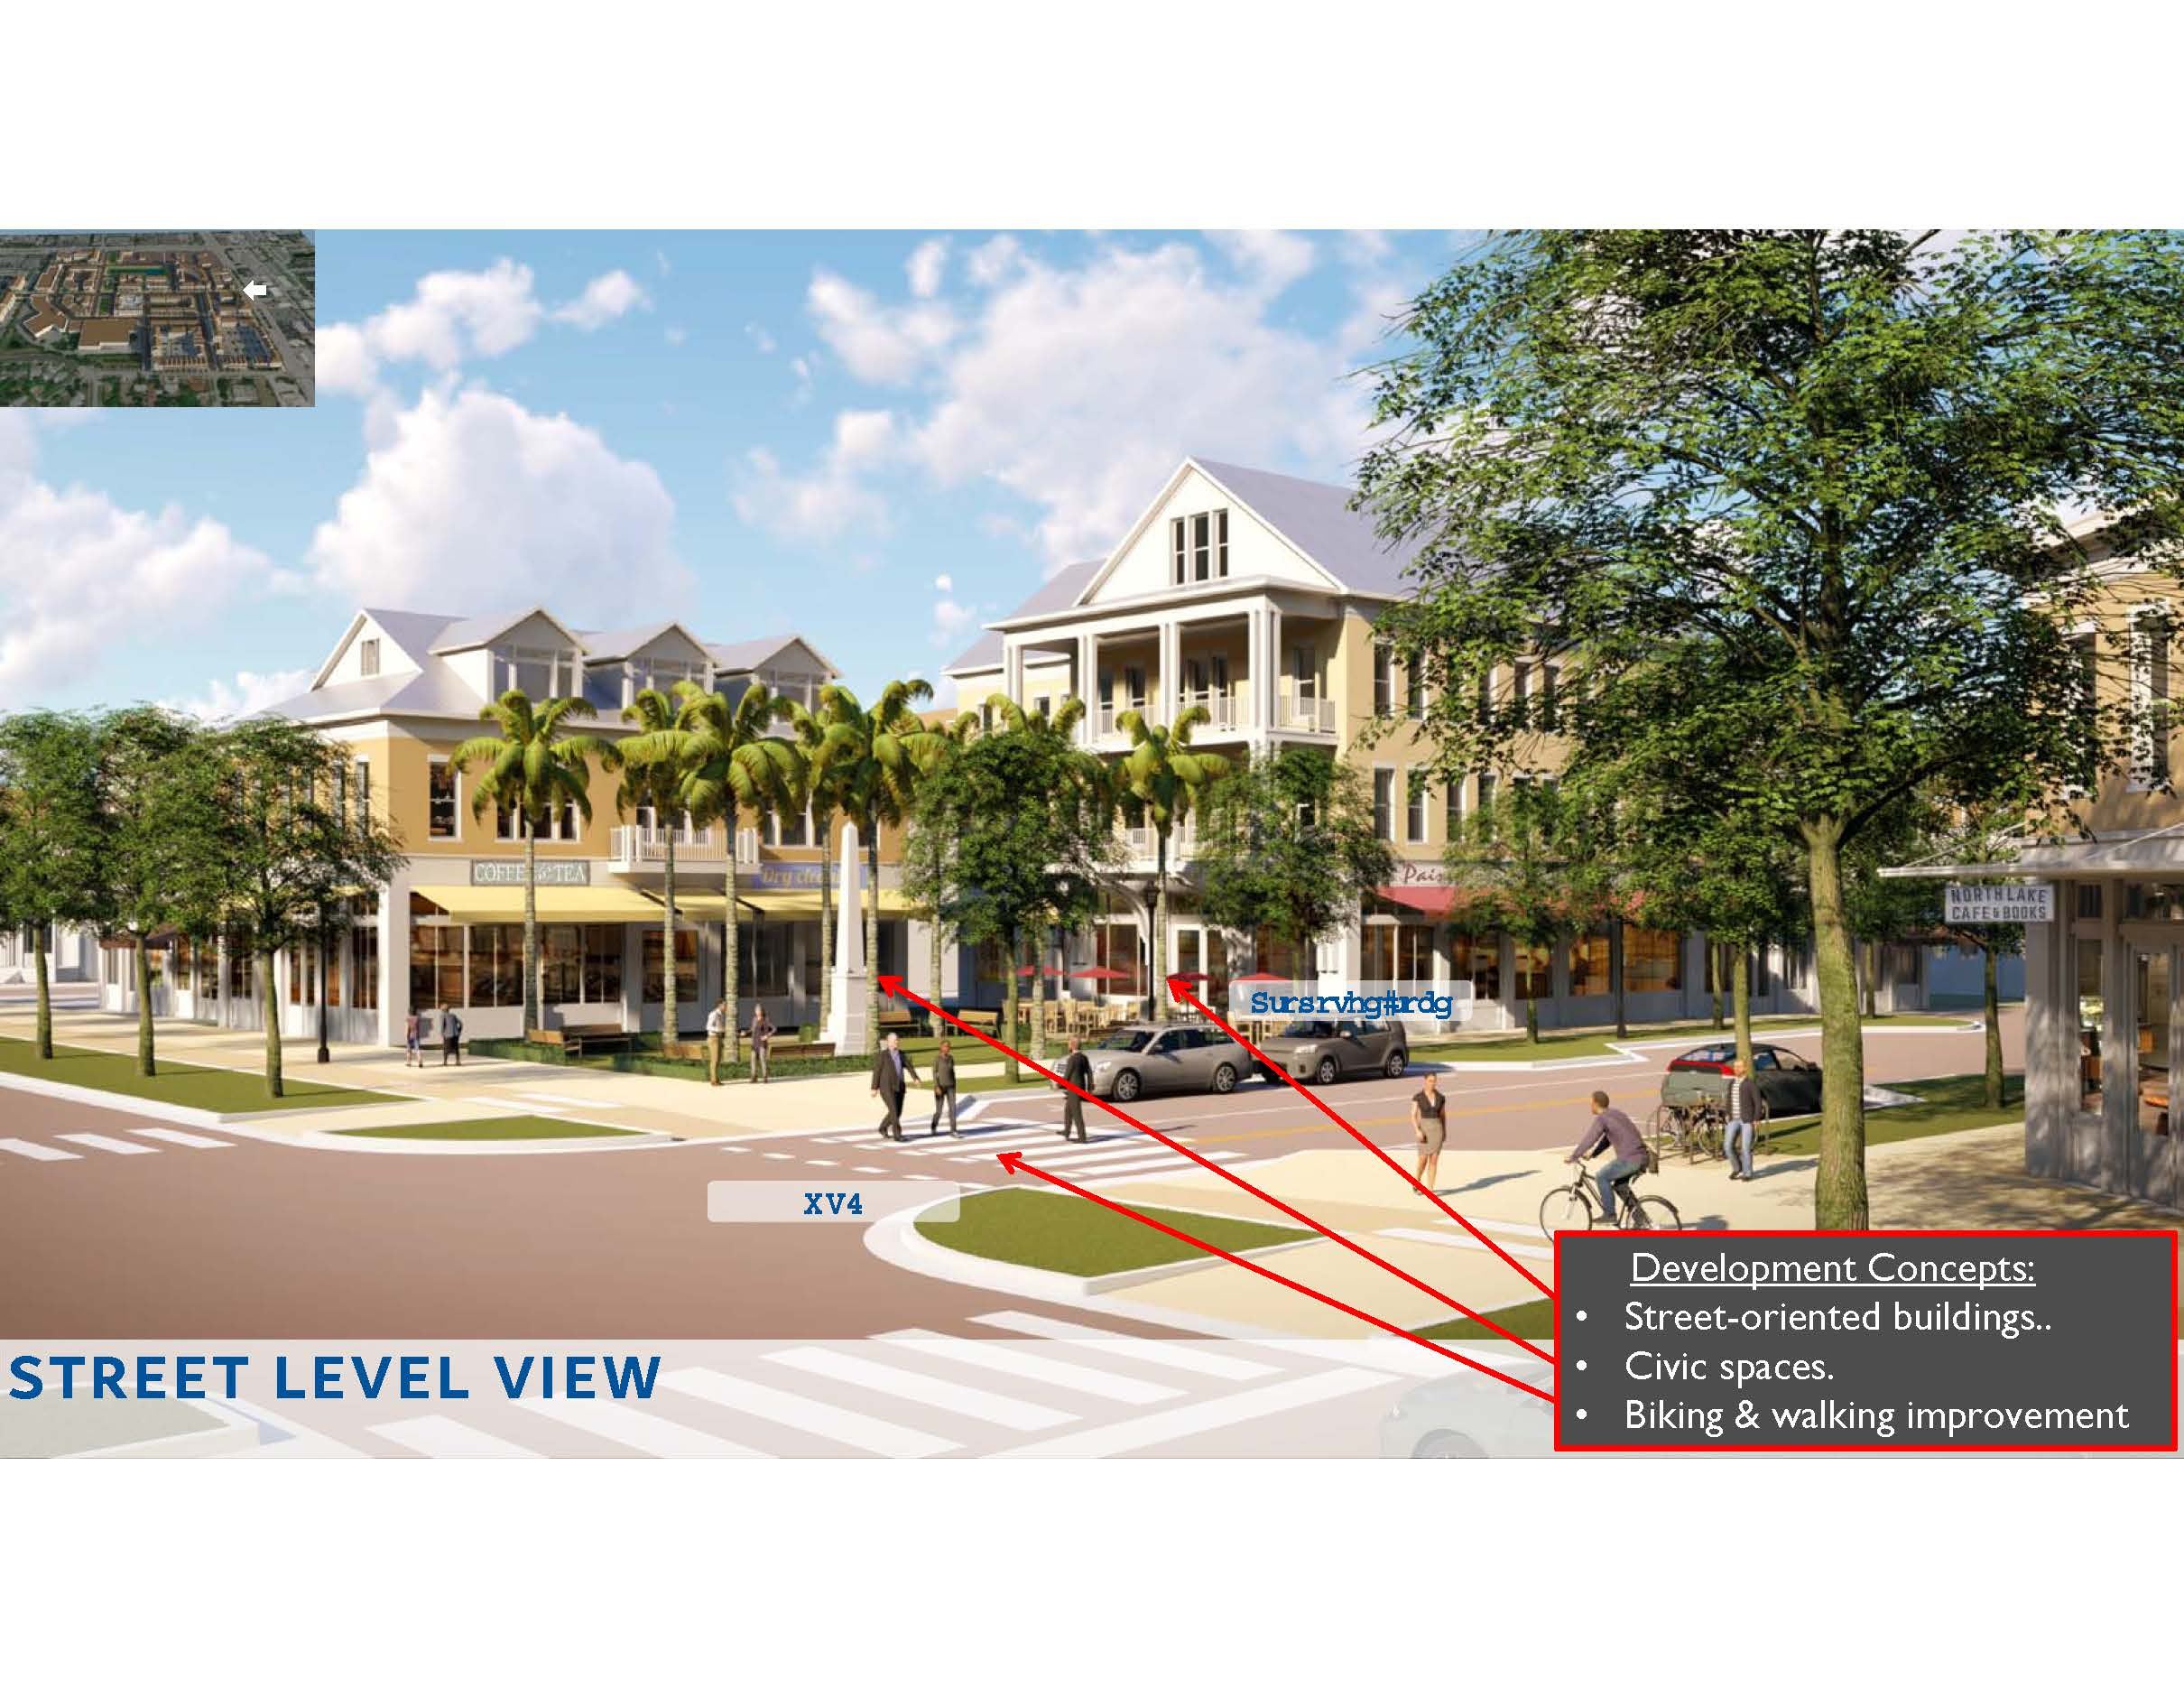 Image of artist rendering of street view of future development